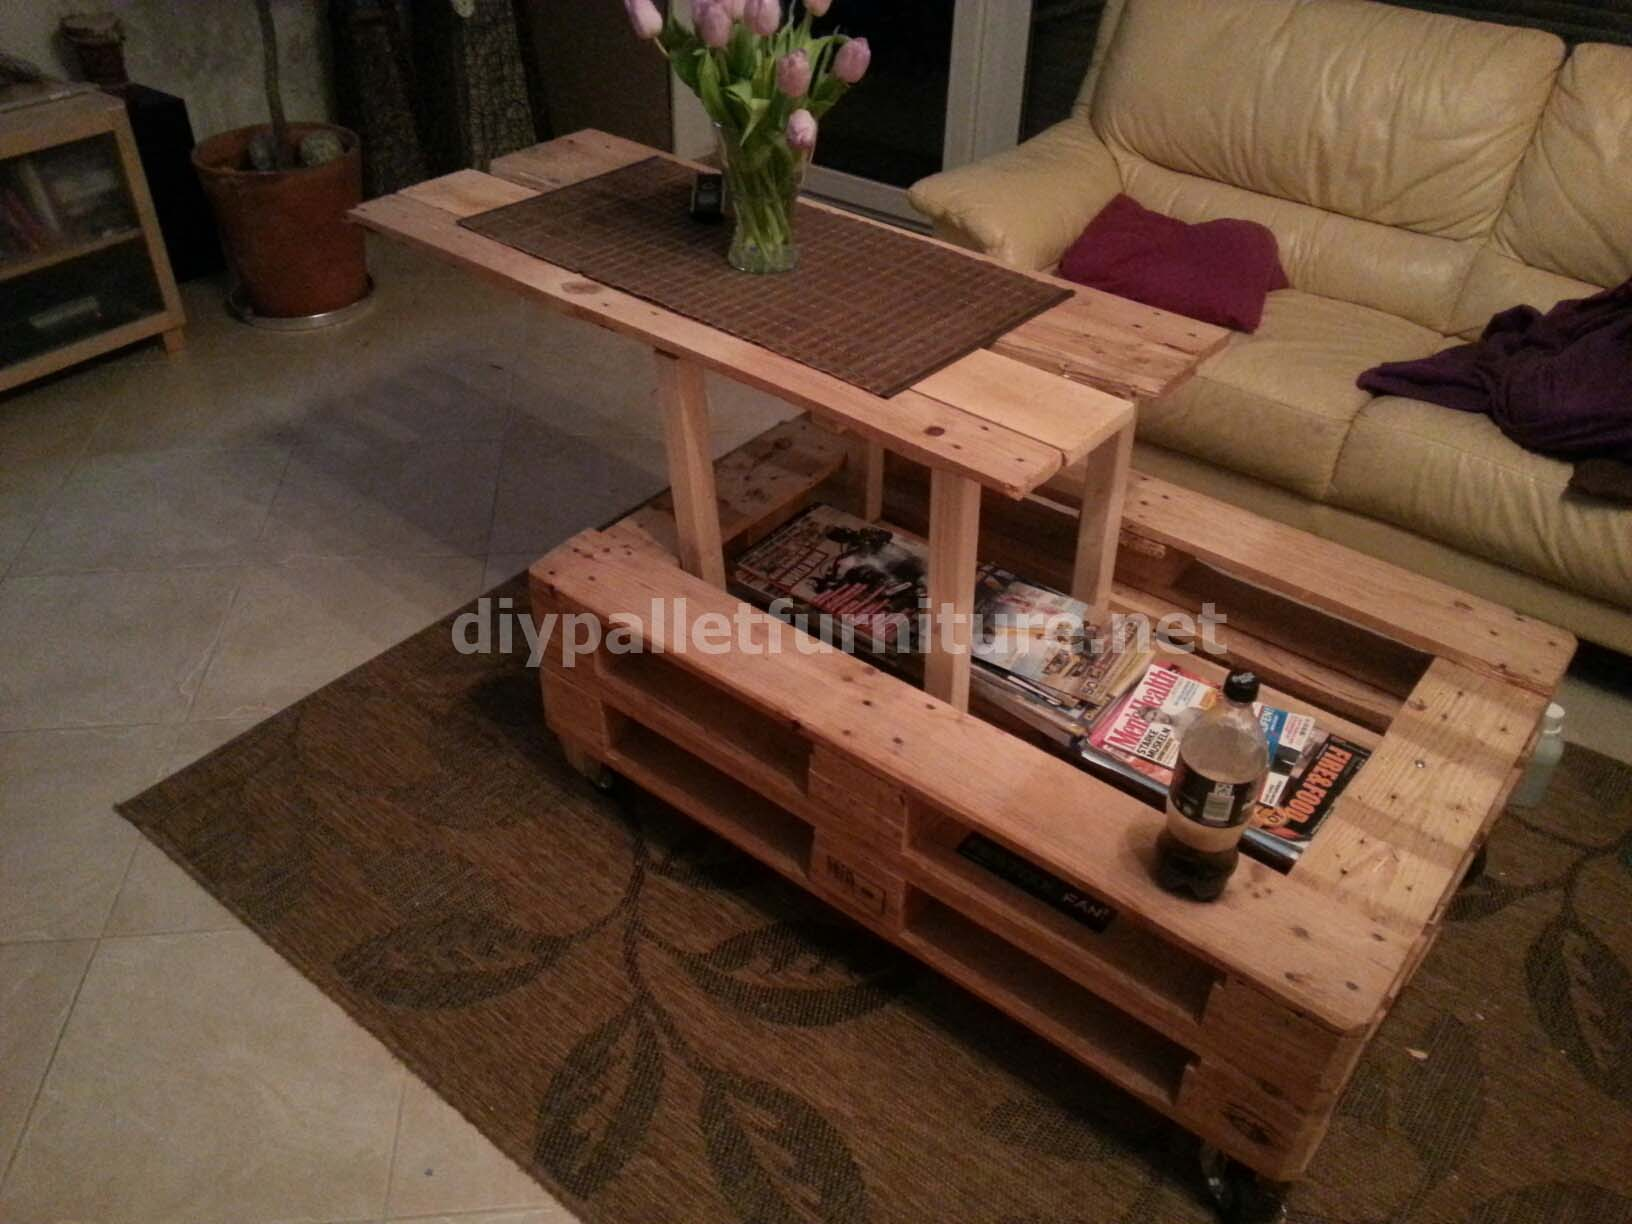 Pneumatic pallet tableDIY Pallet Furniture | DIY Pallet Furniture